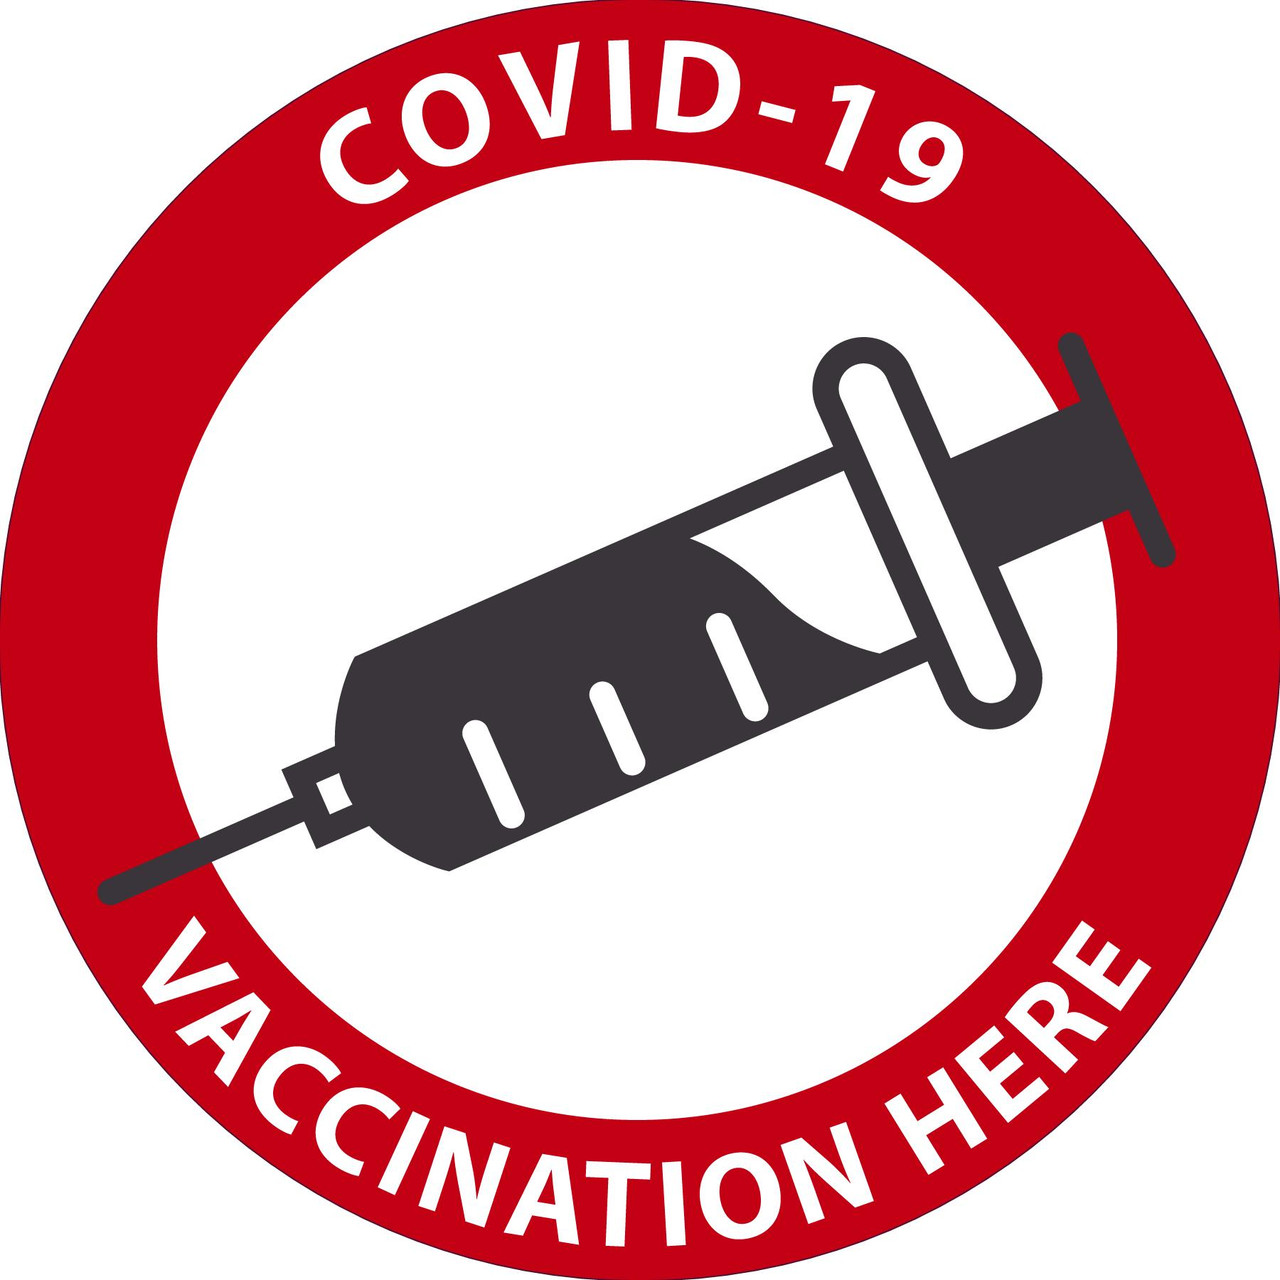 """Window Decal, Covid-19 Vaccination Here, 6"""" x 6"""", Pressure-sensitive Adhesive, 5/pack"""